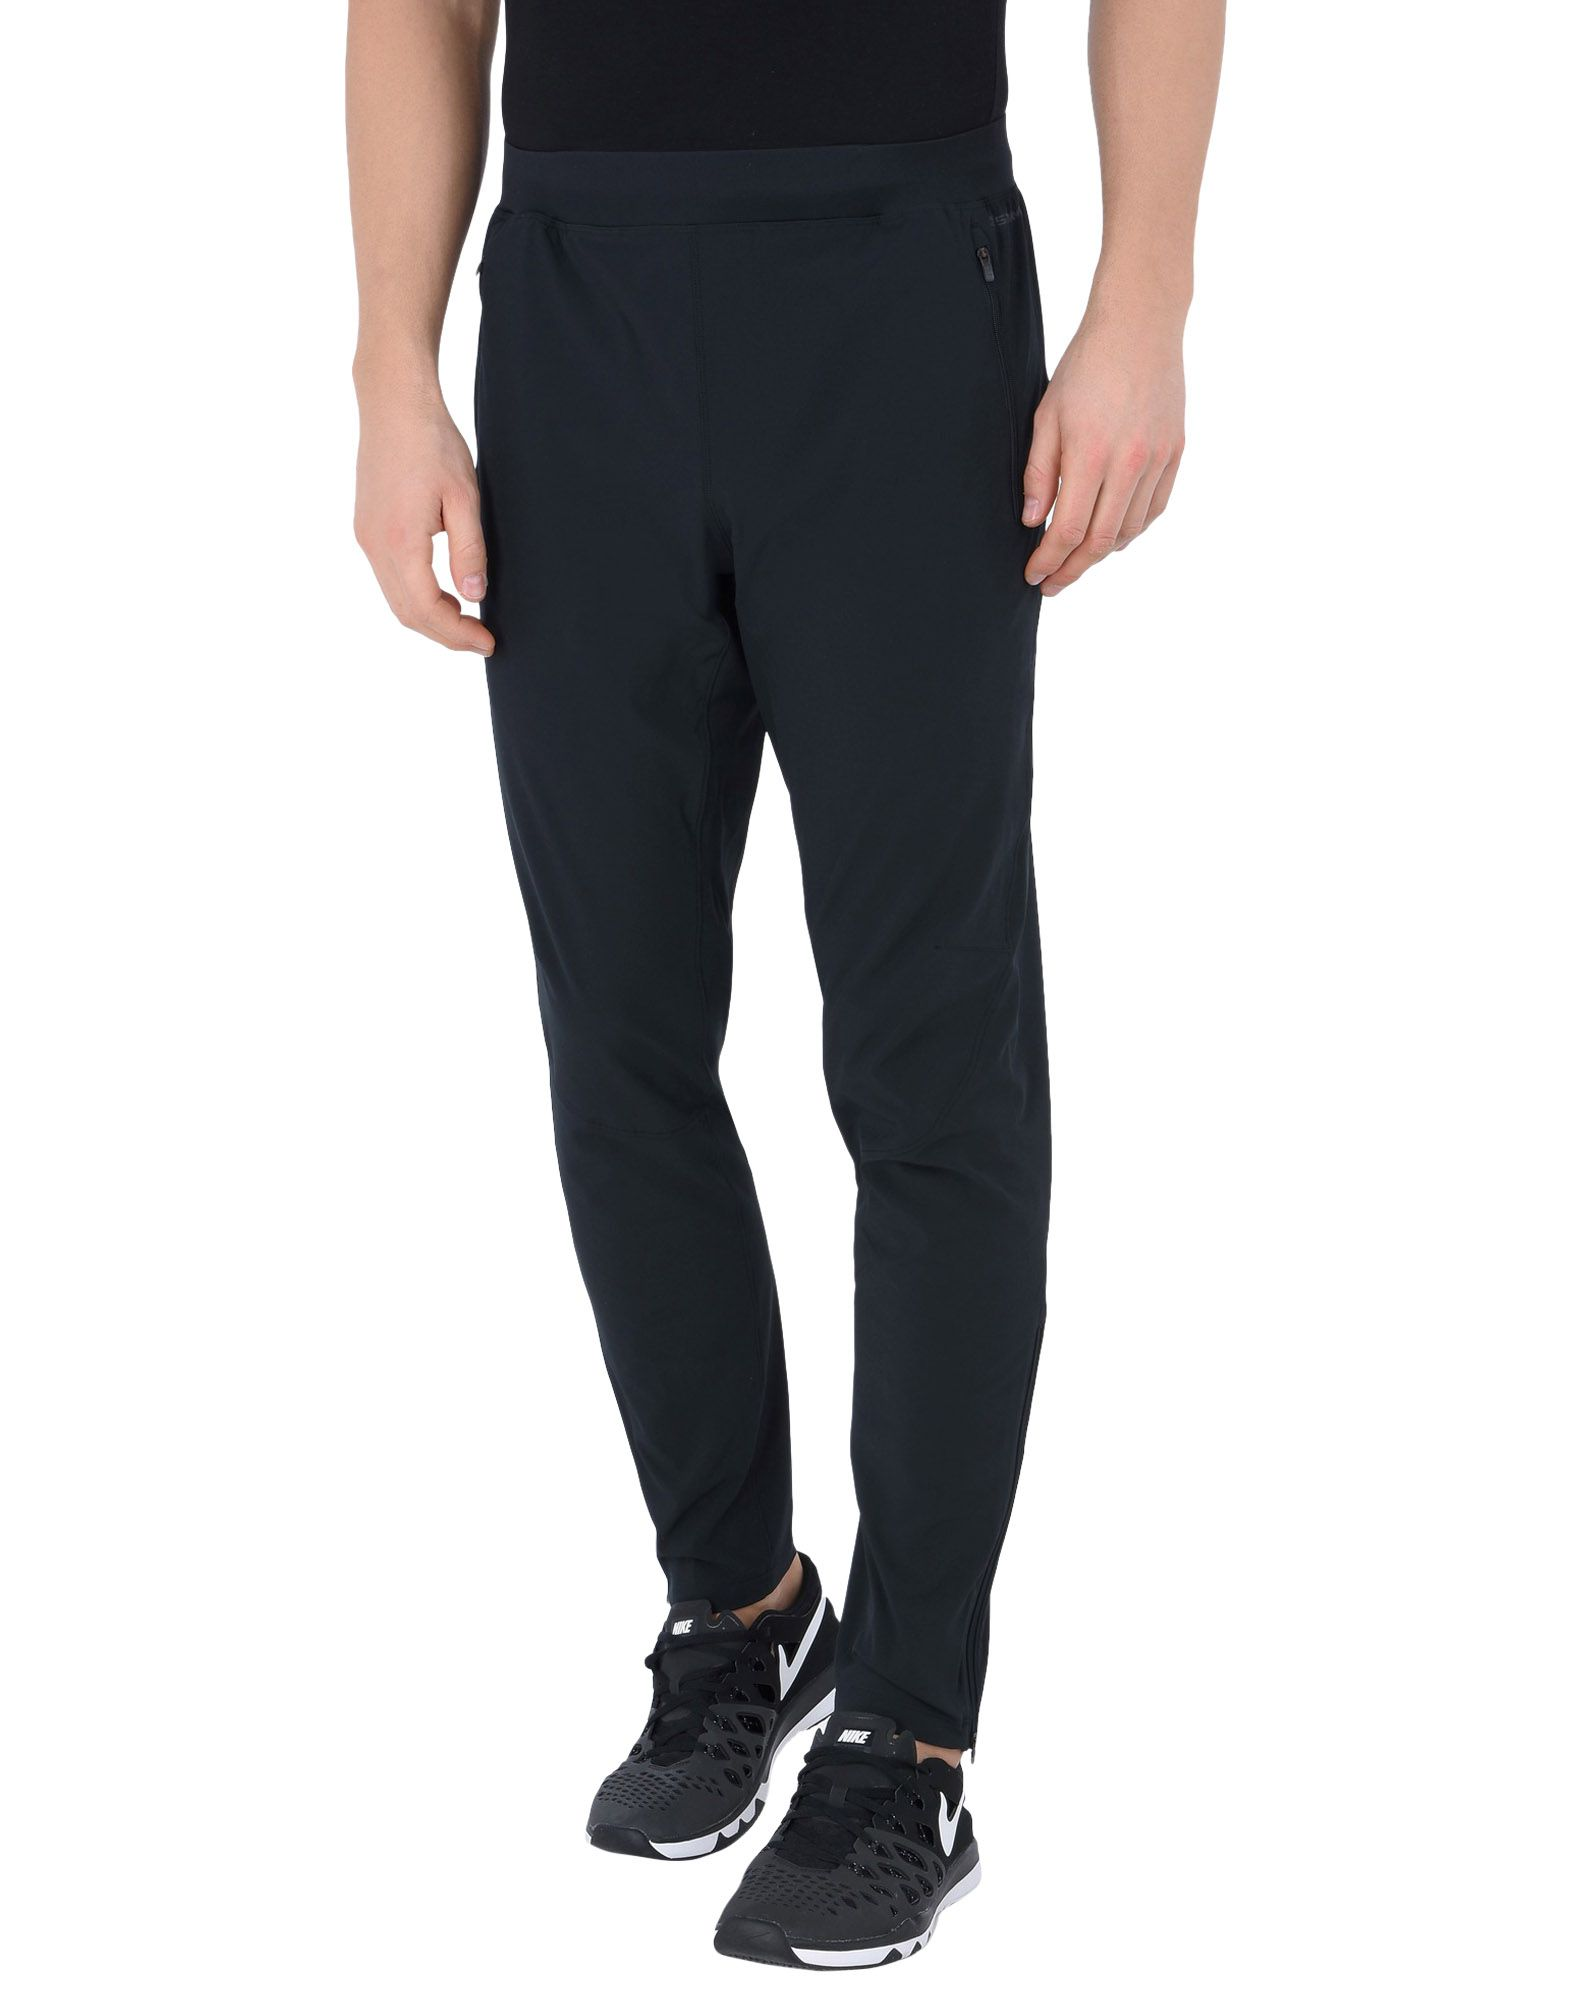 Under Armour Outrun The Storm Sp Pant - Performance Trousers And ... d6a1466af0e